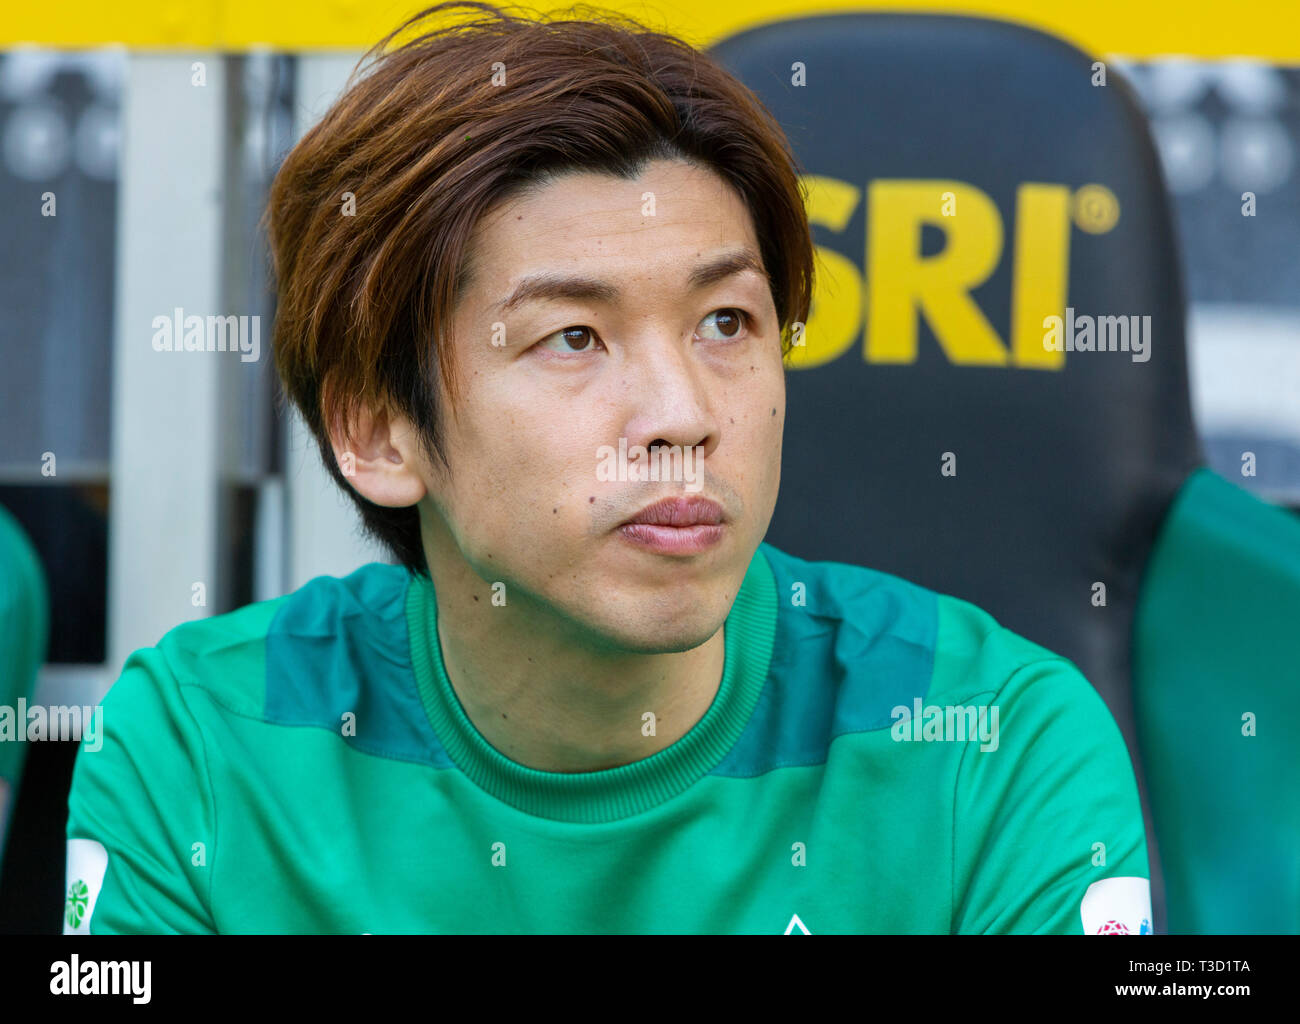 sports, football, Bundesliga, 2018/2019, Borussia Moenchengladbach vs SV Werder Bremen 1-1, Stadium Borussia Park, players bench, Yuya Osako (Bremen), DFL REGULATIONS PROHIBIT ANY USE OF PHOTOGRAPHS AS IMAGE SEQUENCES AND/OR QUASI-VIDEO - Stock Image